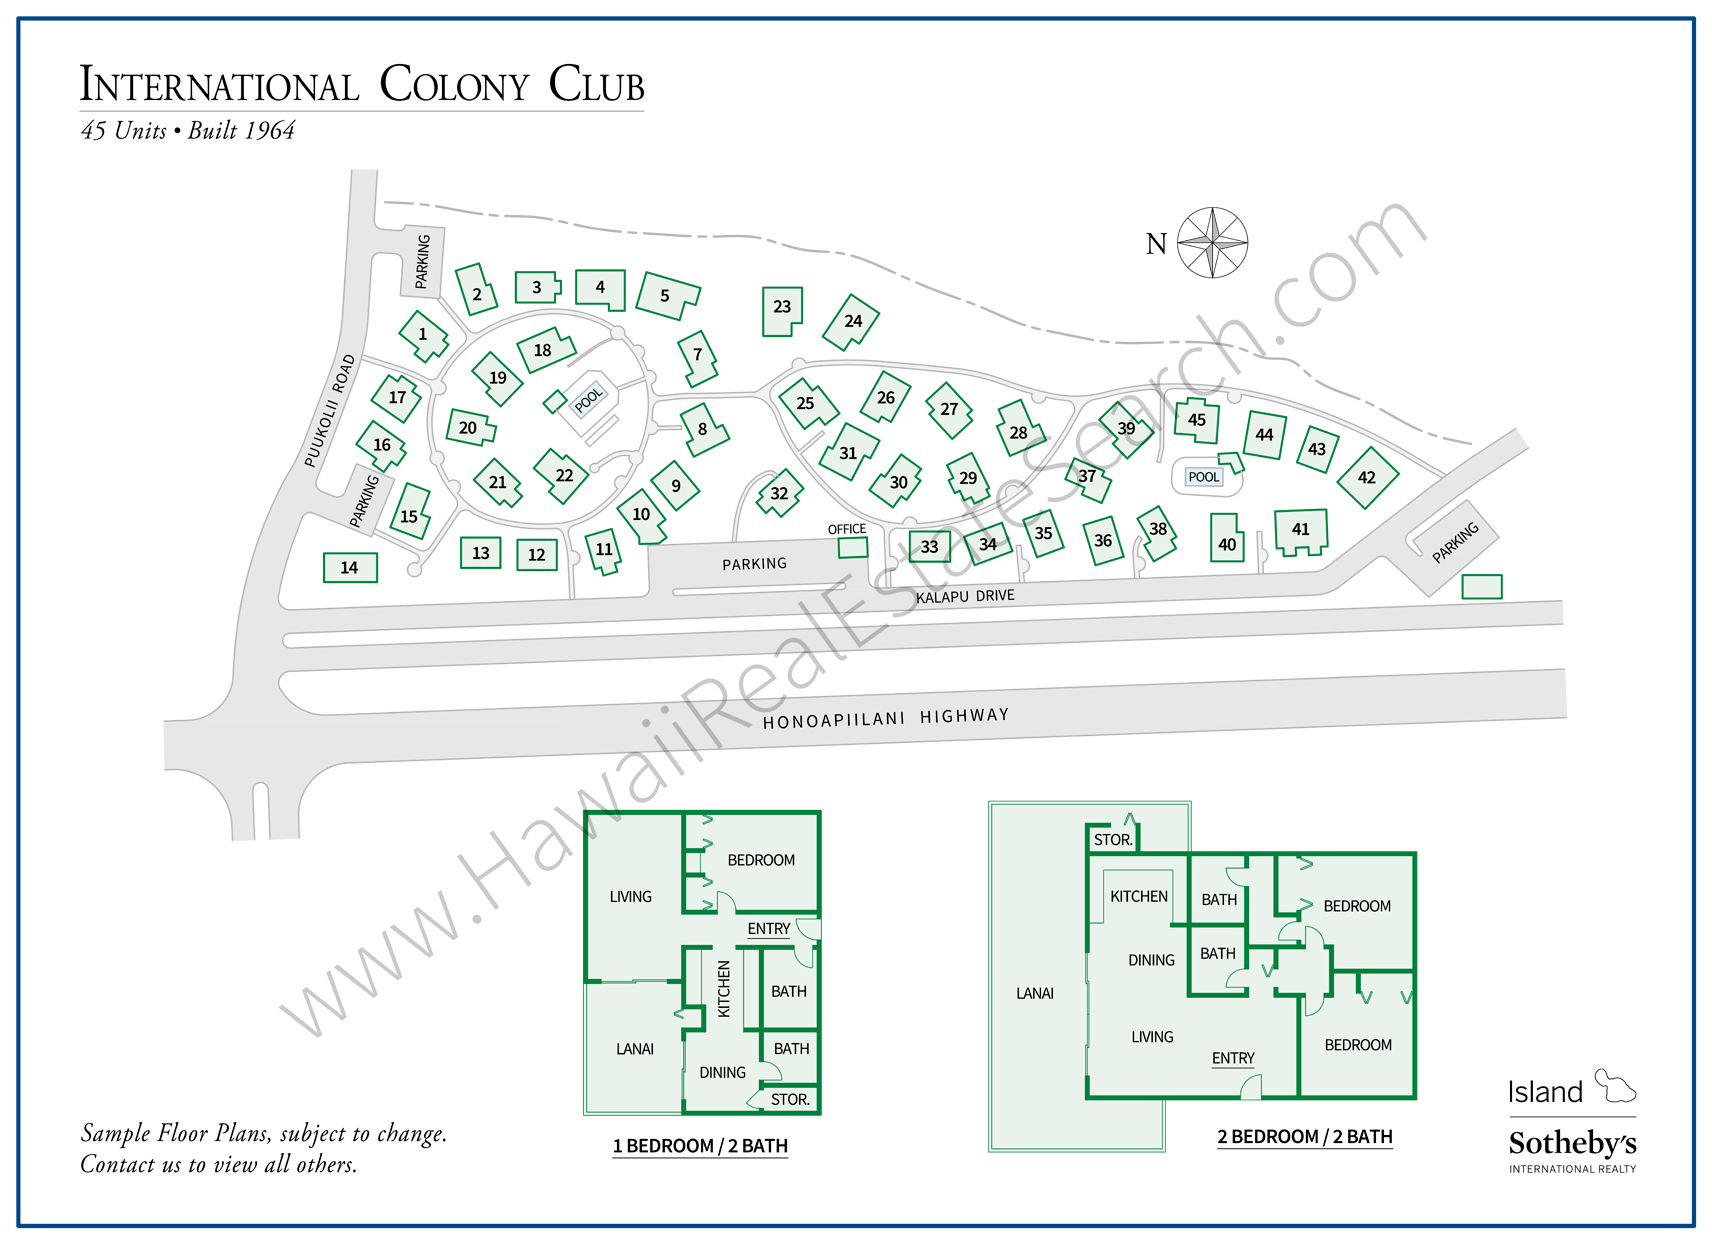 International Colony Club Map and Floor Plans